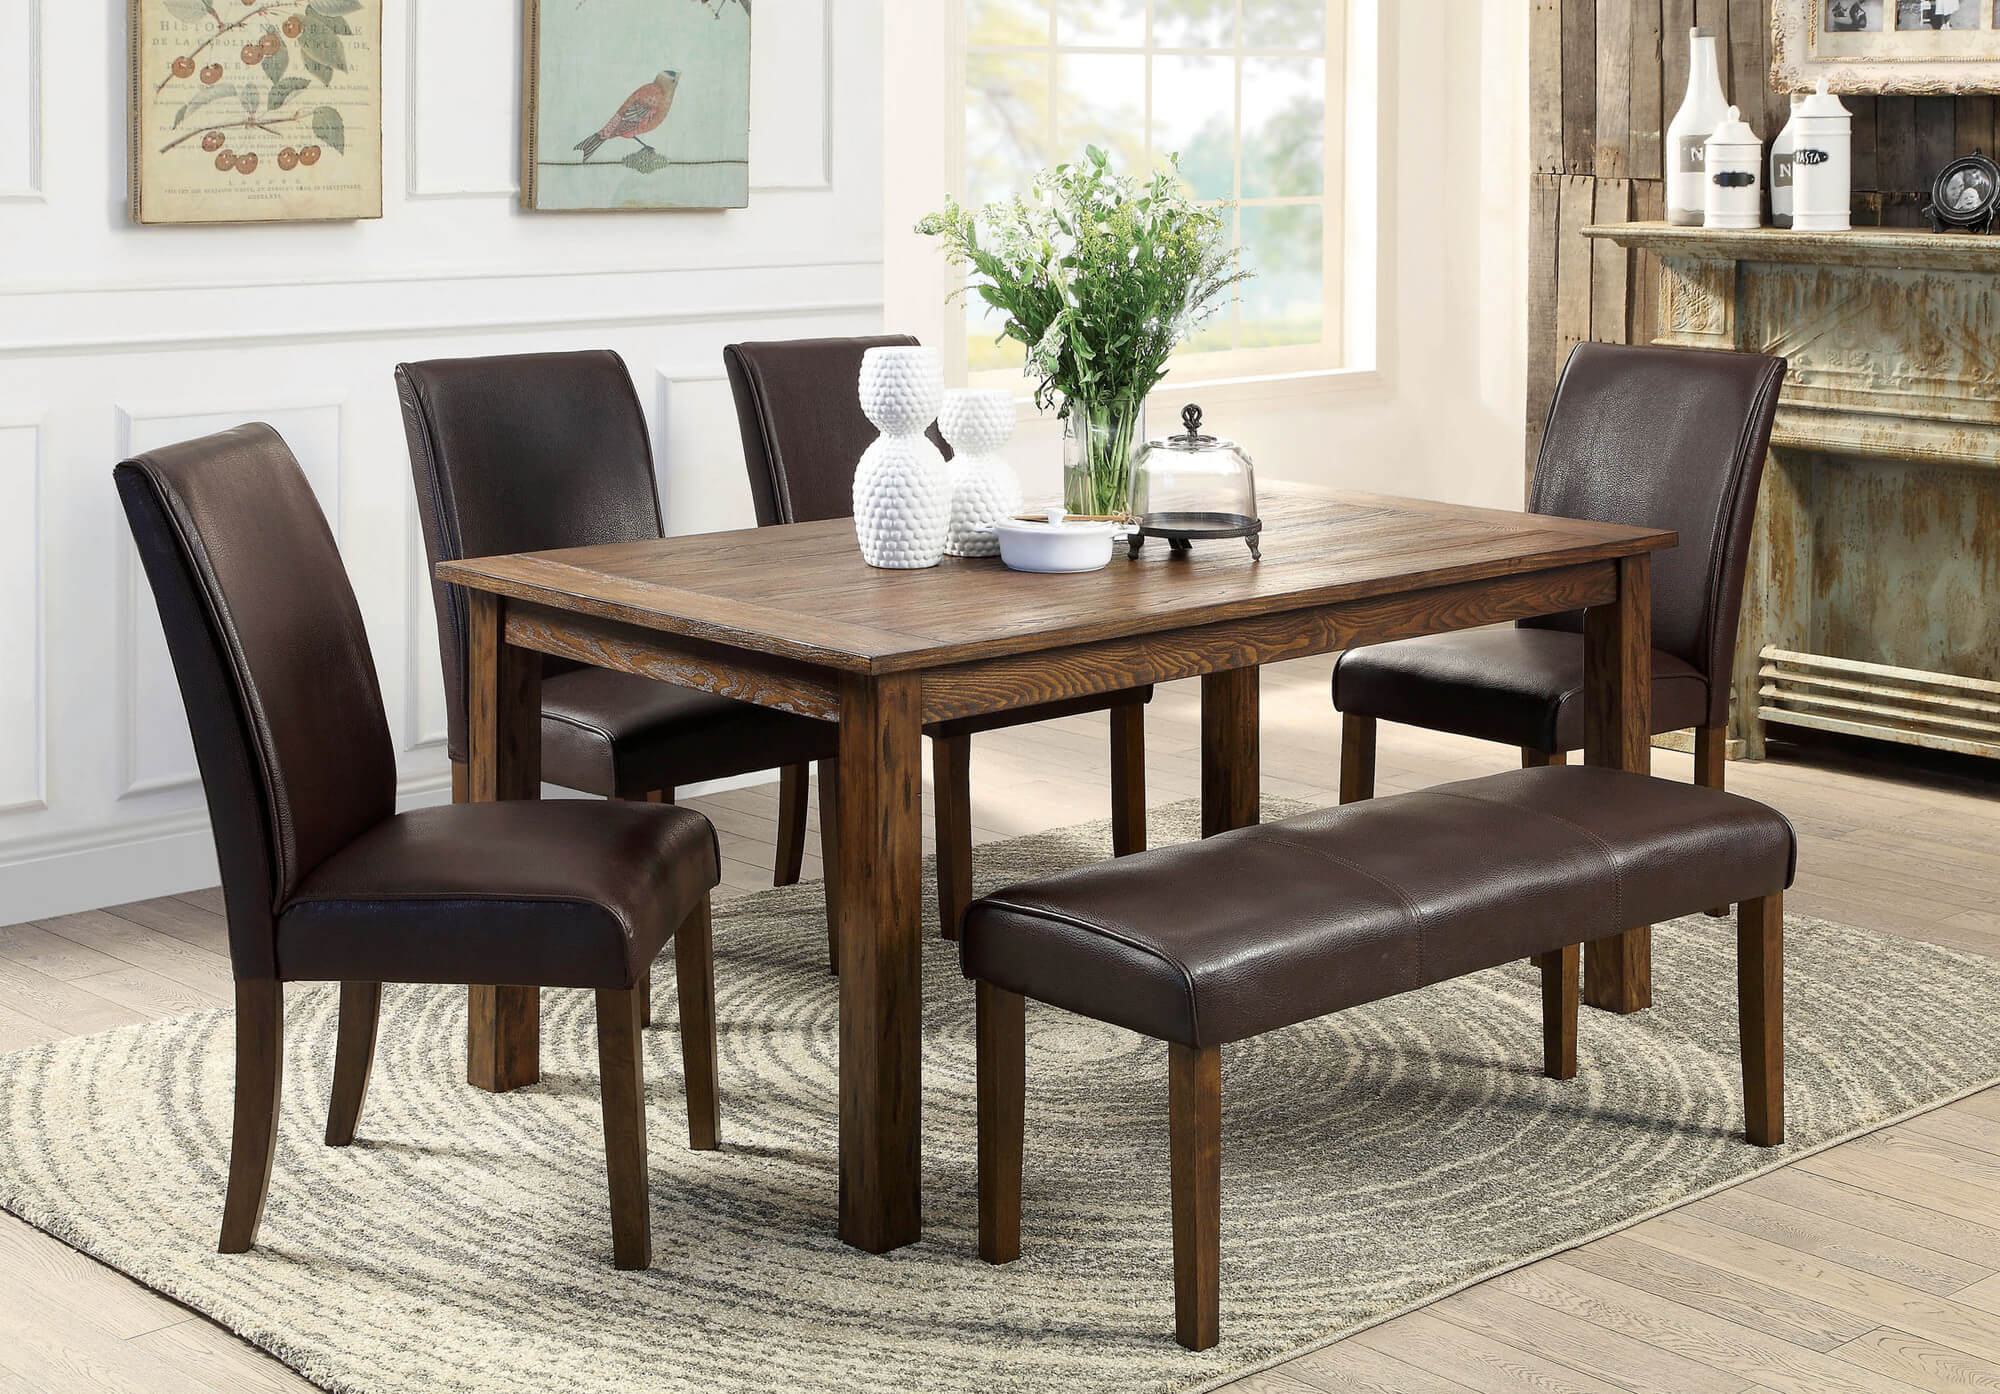 Here\u0027s a rustic rectangle dining table with fully cushioned chairs and bench. This look works & 26 Dining Room Sets (Big and Small) with Bench Seating (2018)